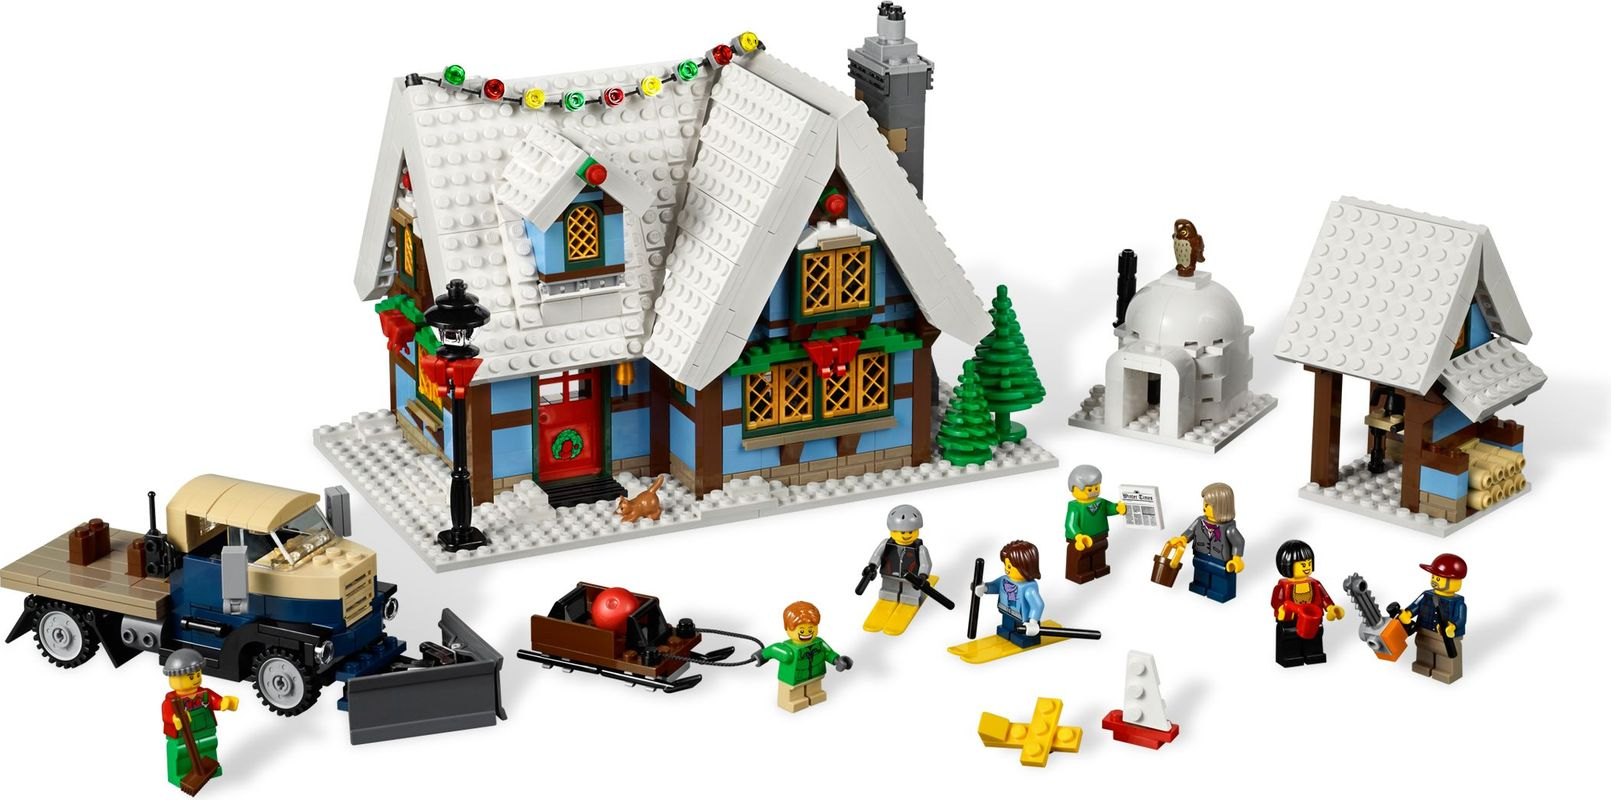 Winter Village Cottage components